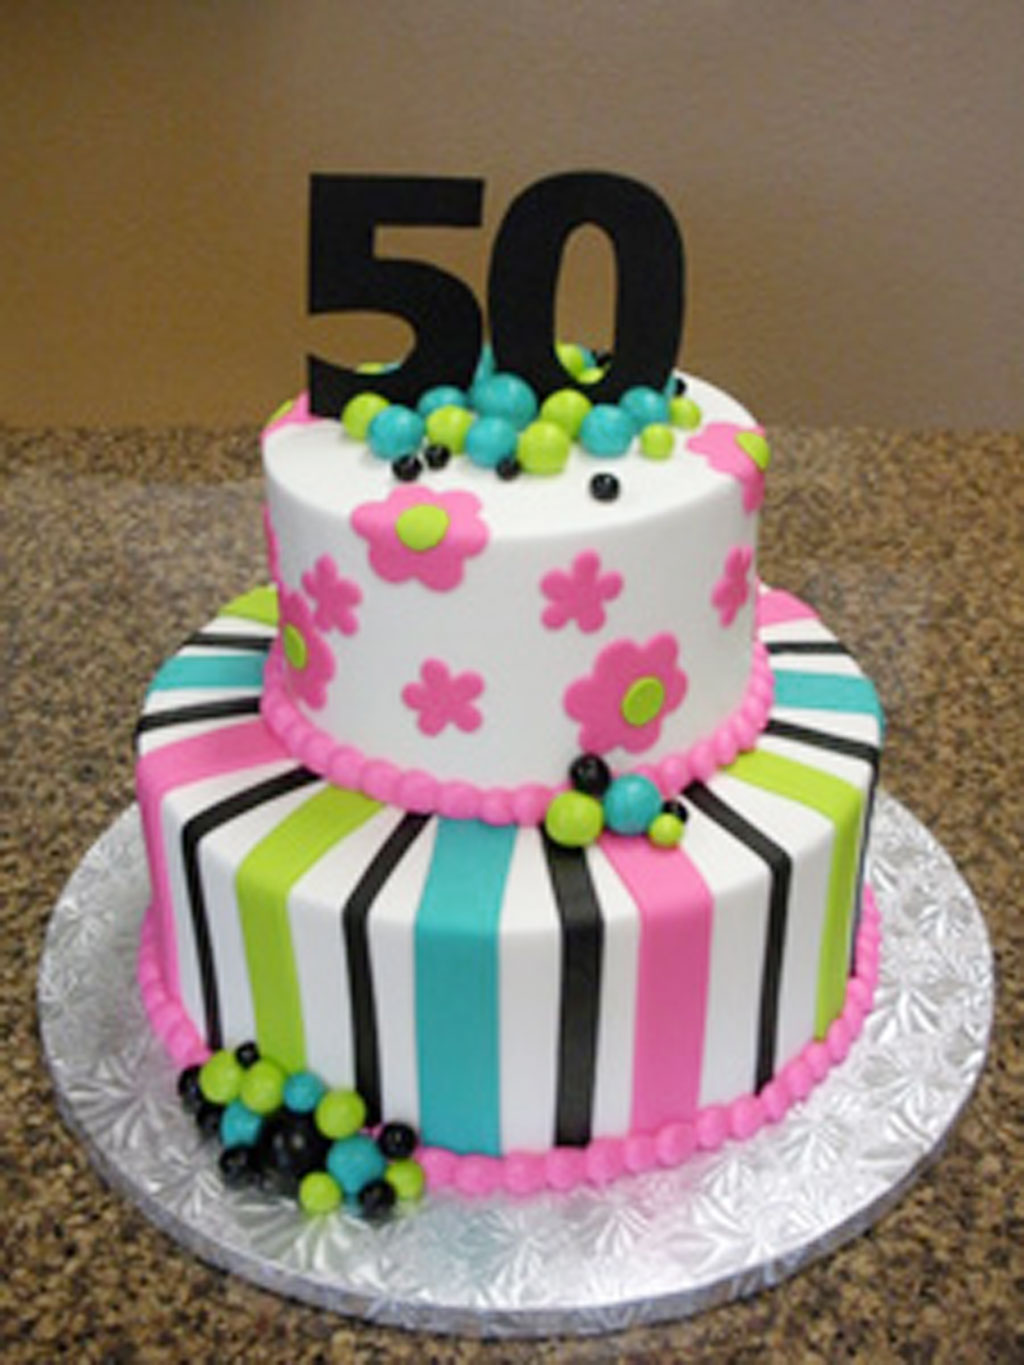 50th Birthday Cakes Pictures For Women Birthday Cake Cake Ideas